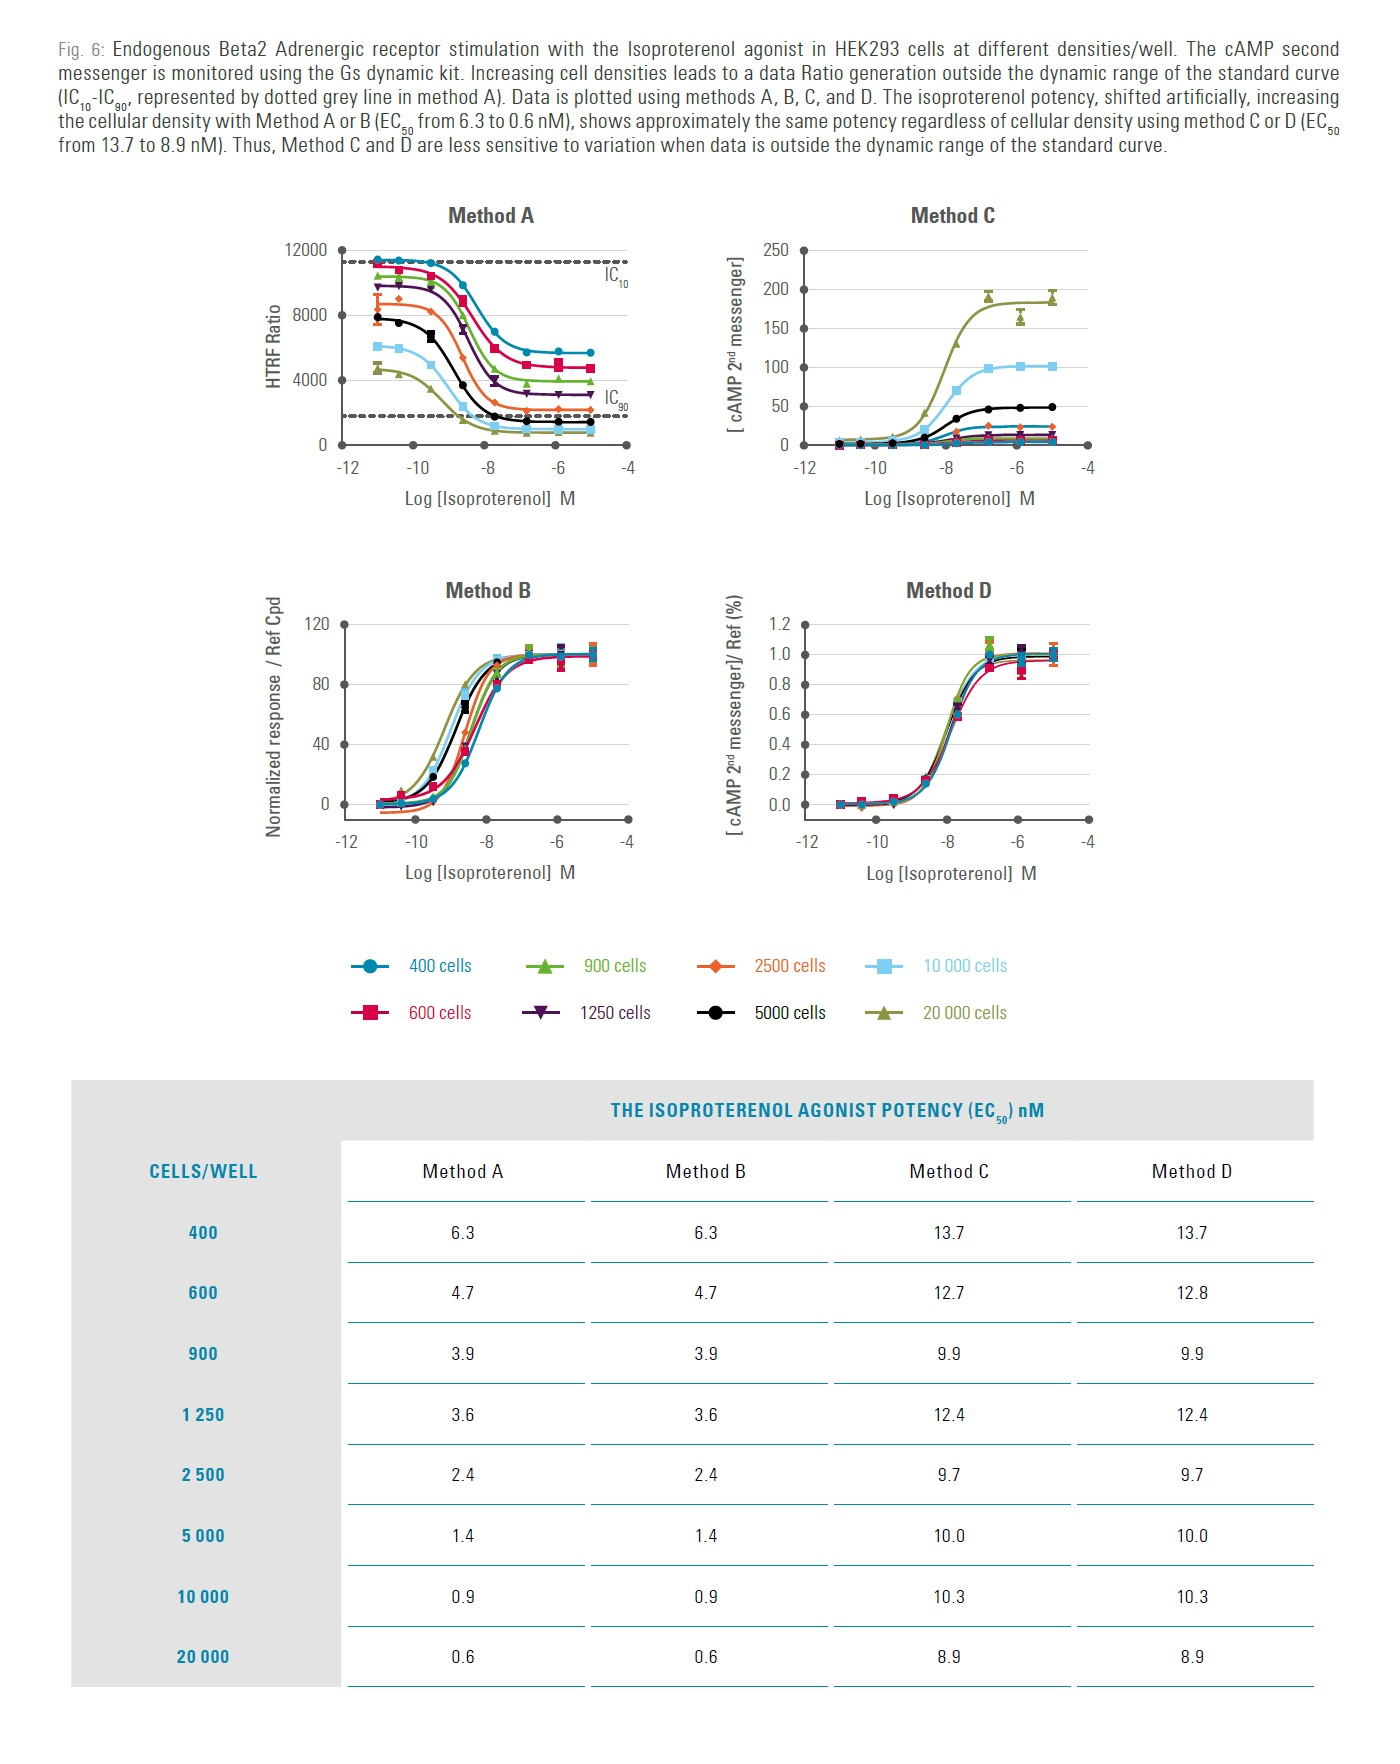 Figure 6 Endogenous Beta 2 Adrenergic receptor stimulation with the Isoproterenol against in HEK293 cells at different densities/well